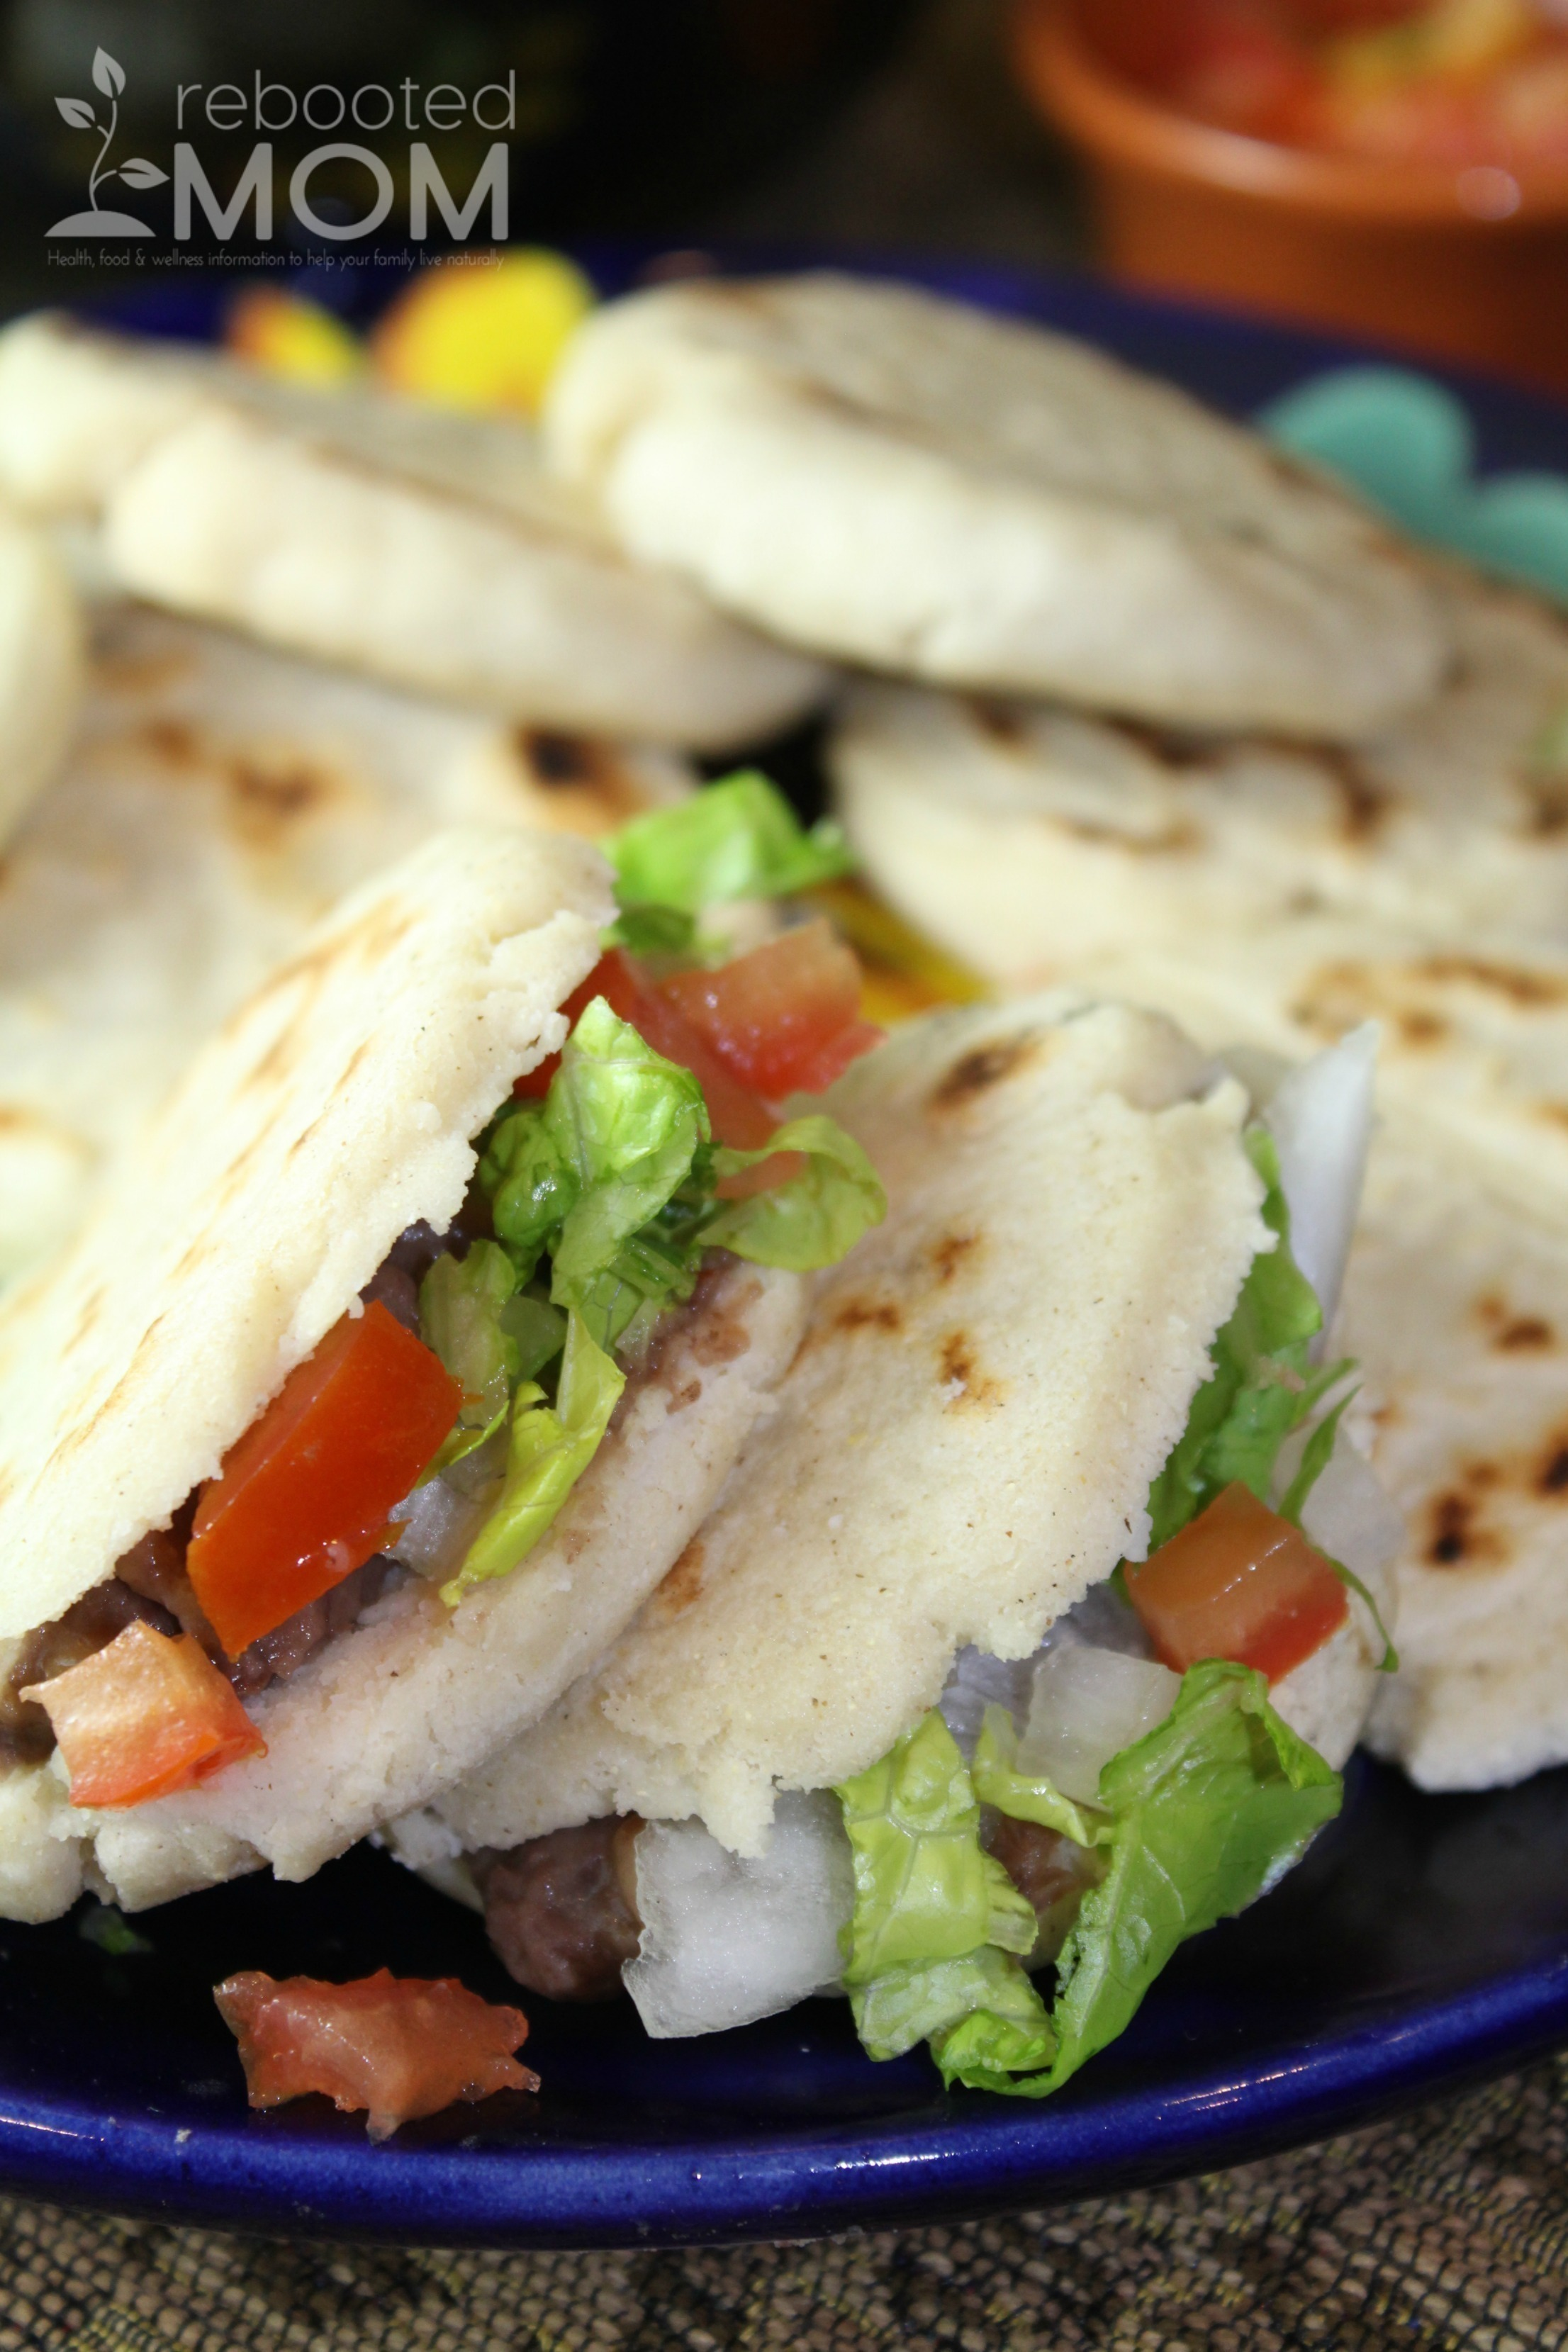 Combine corn flour and water to make a thick taco that you can stuff with refried beans or leftover meat.